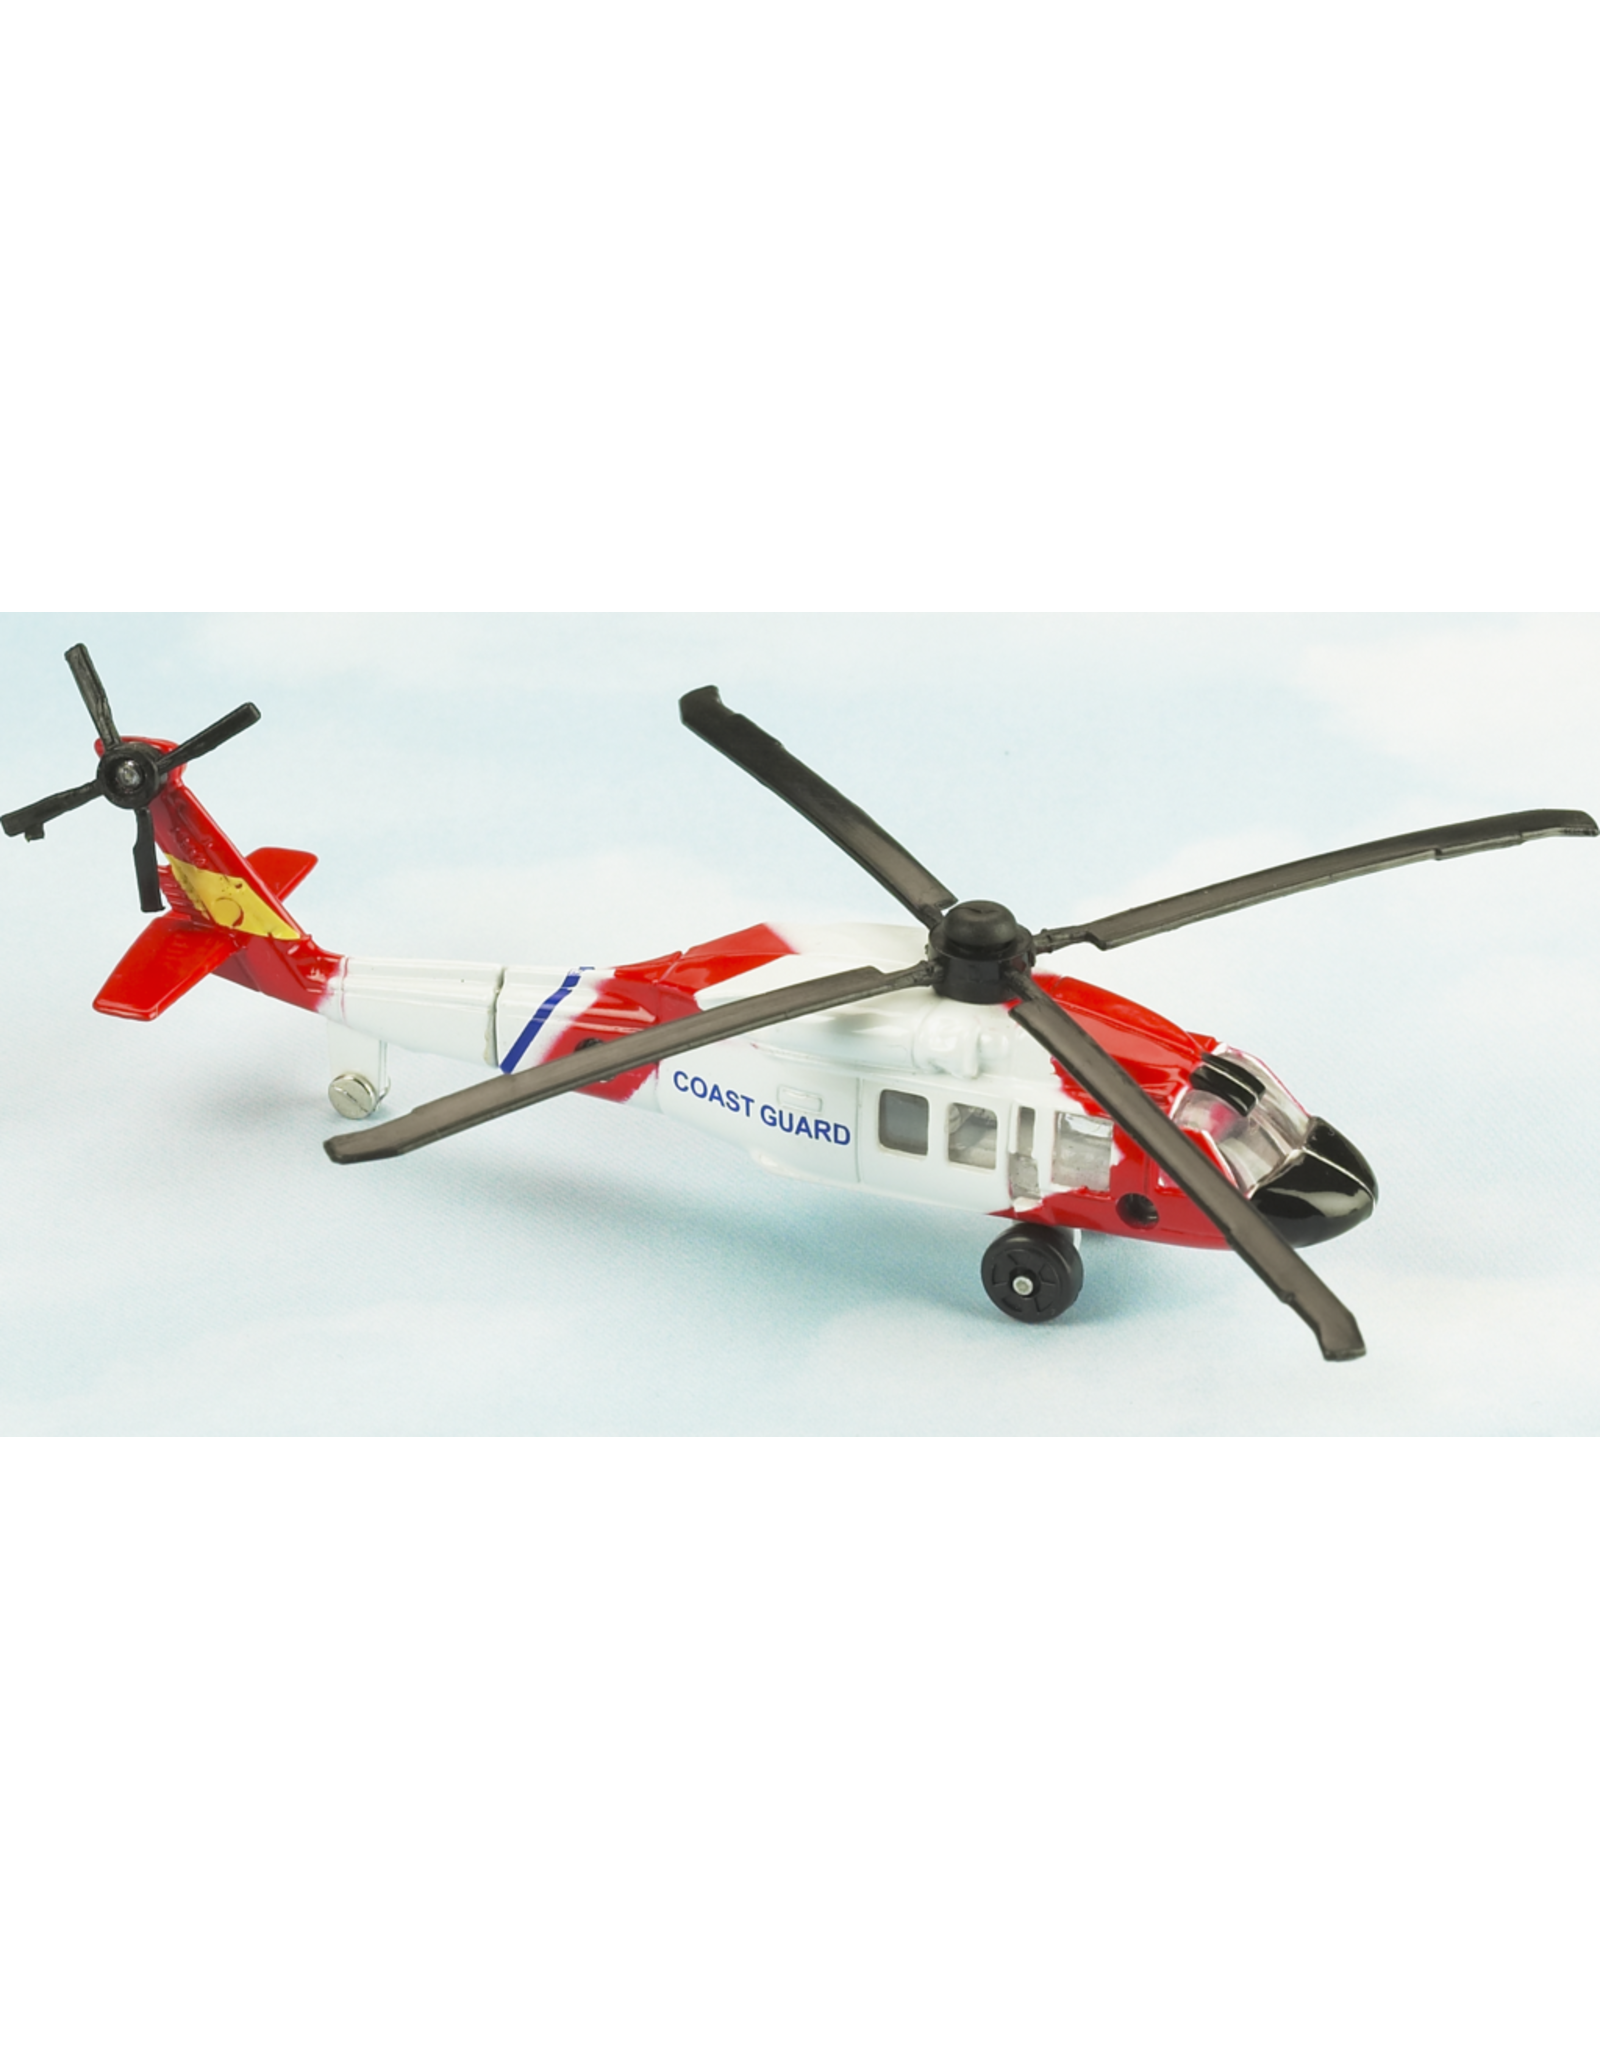 Hot Wings Uh 60 Coast Guard Helicopter Hub Hobby